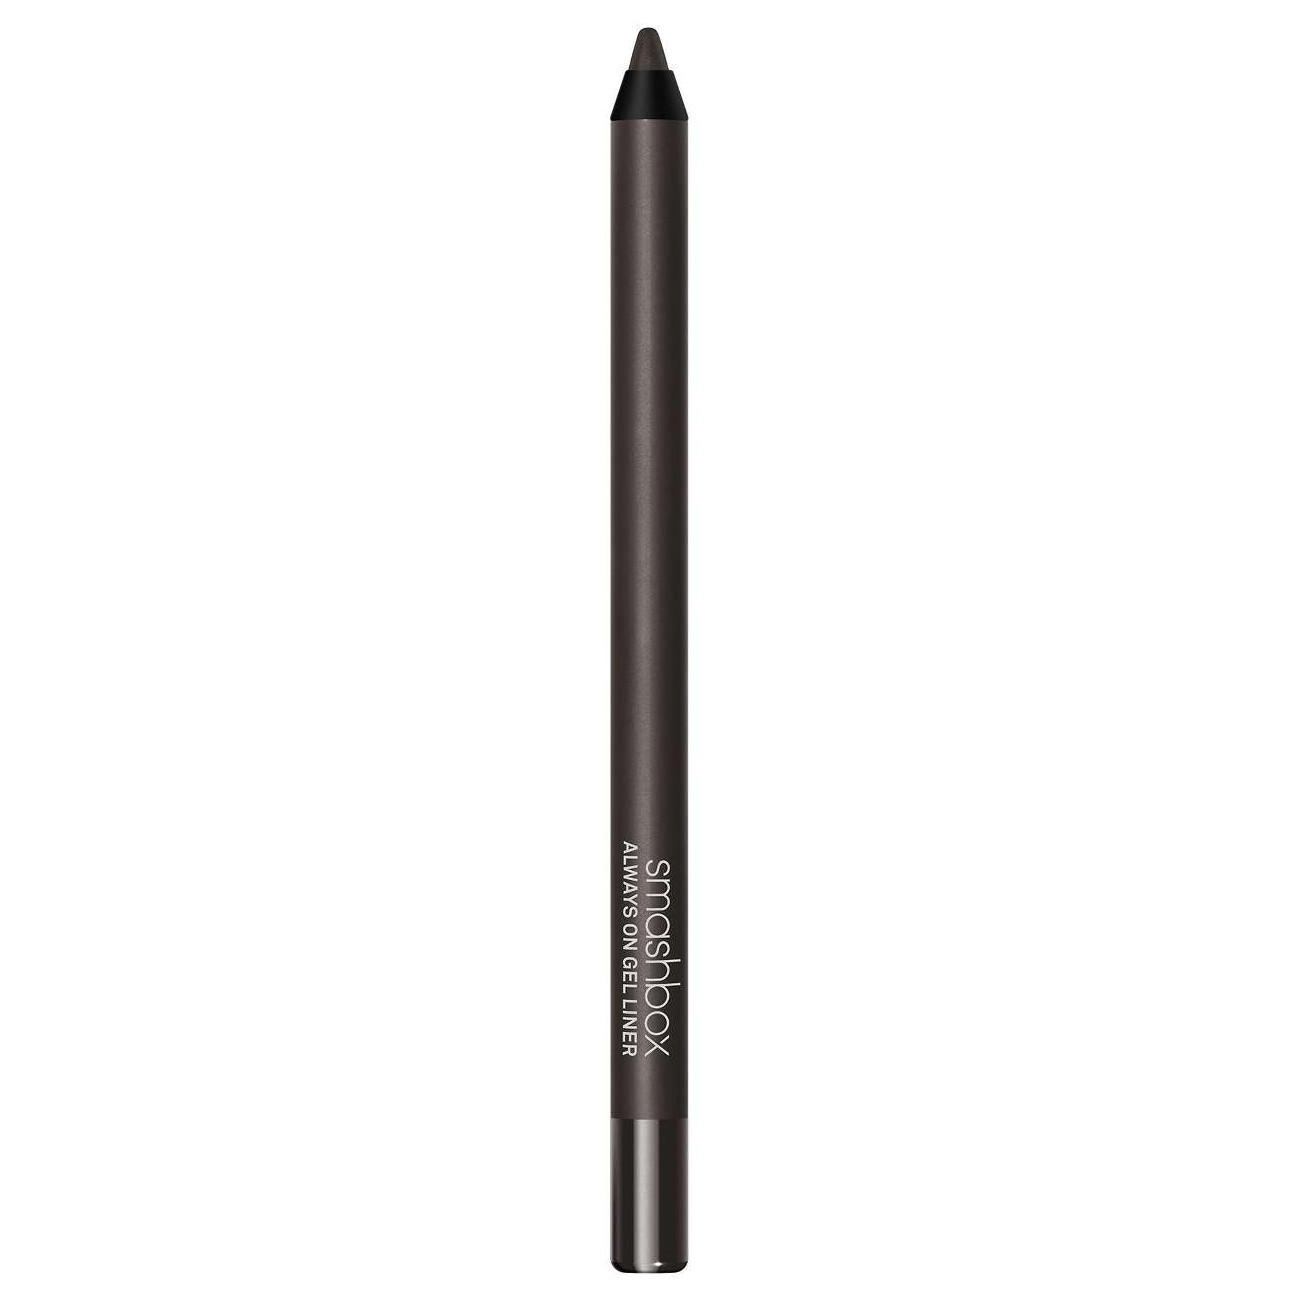 Smashbox Always On Gel Eyeliner Moody